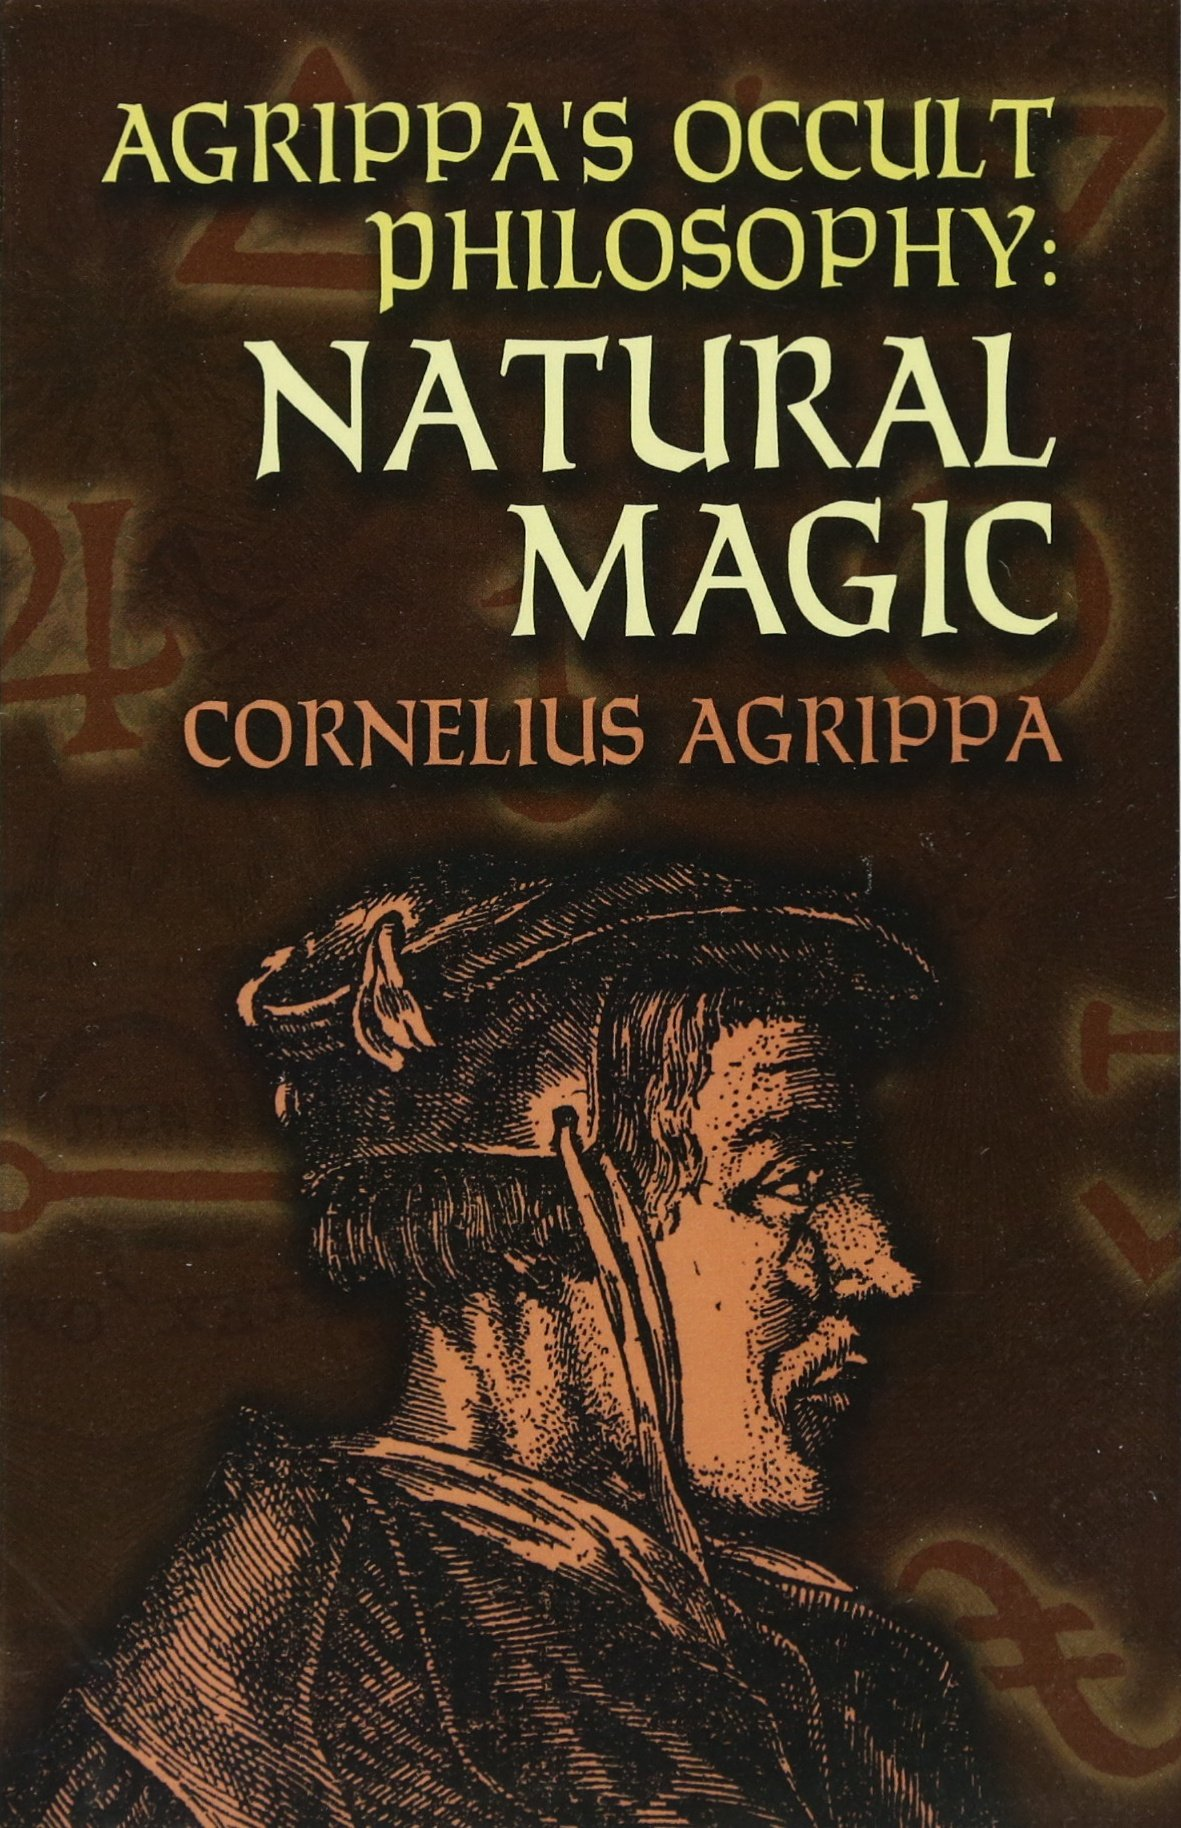 Amazon com: Agrippa's Occult Philosophy: Natural Magic